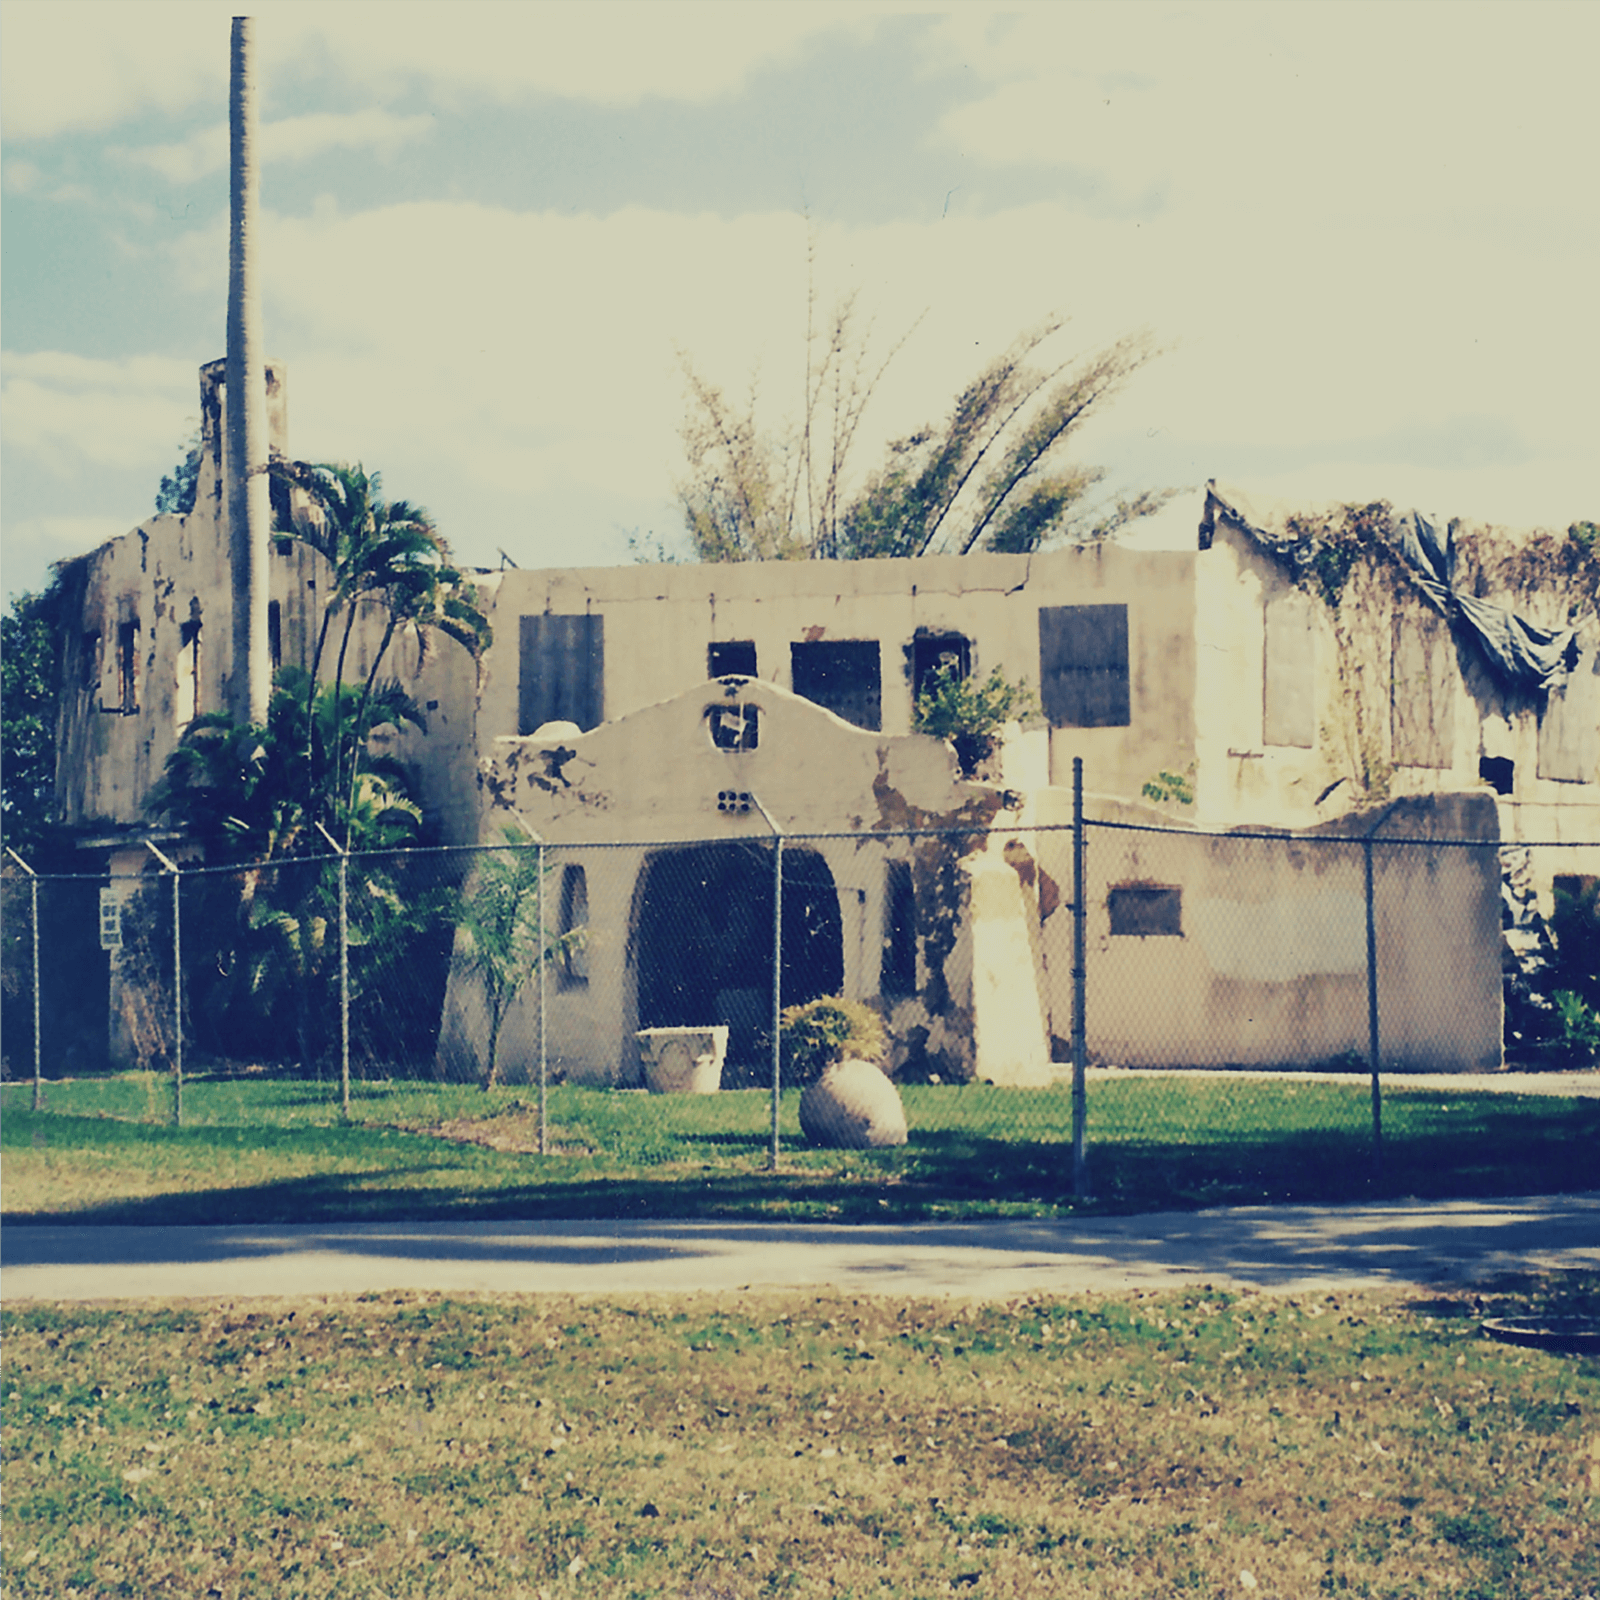 The home suffered near destruction from three arson fires and several hurricanes, and then was neglected for over 13 years.